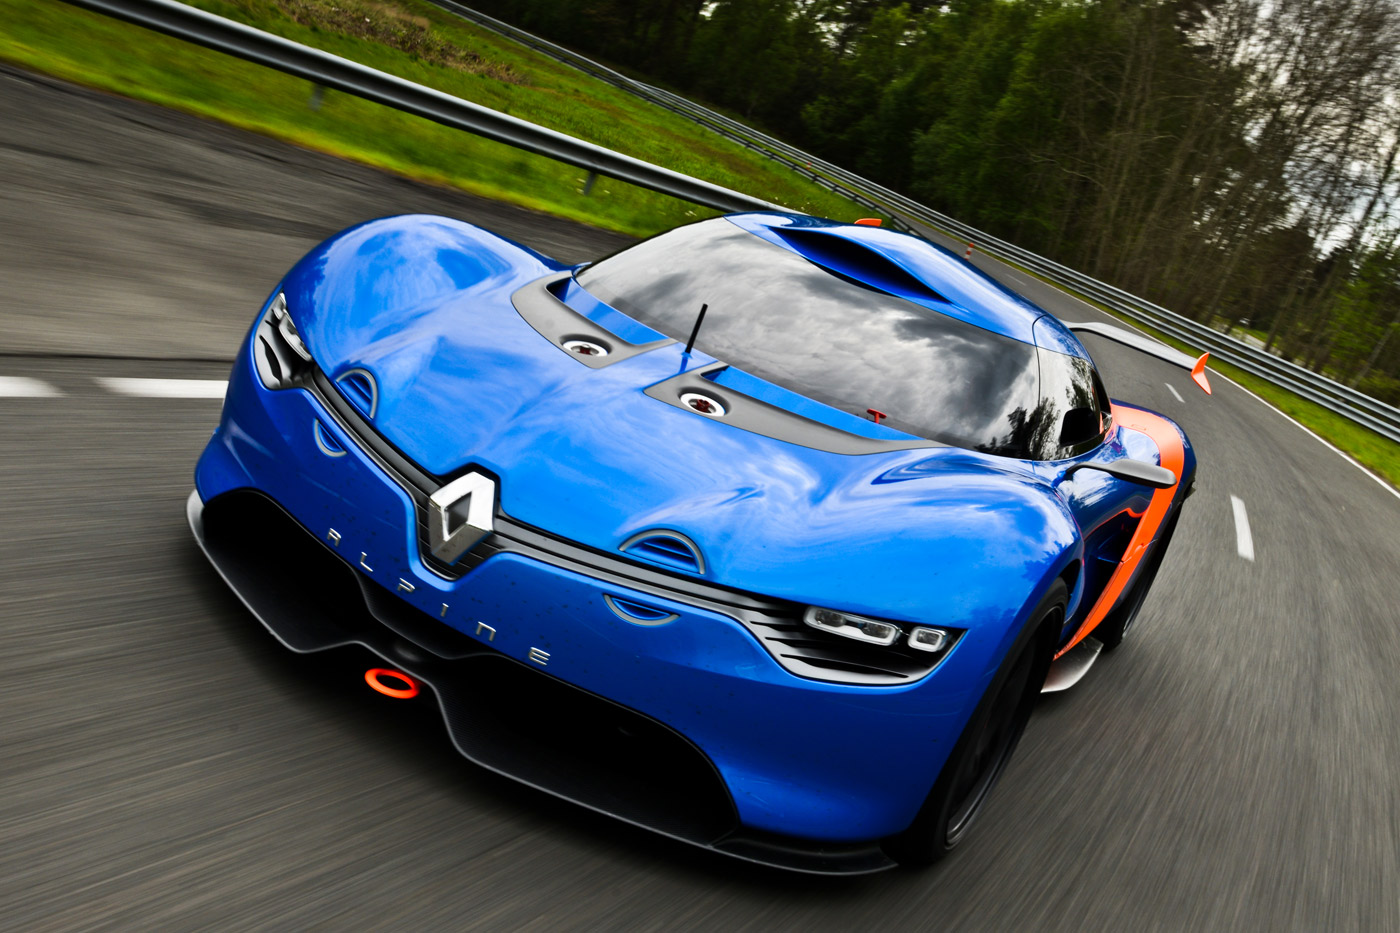 Renault Alpine A110 High Resolution Image Wallpapers Desktop Download Wallpaper